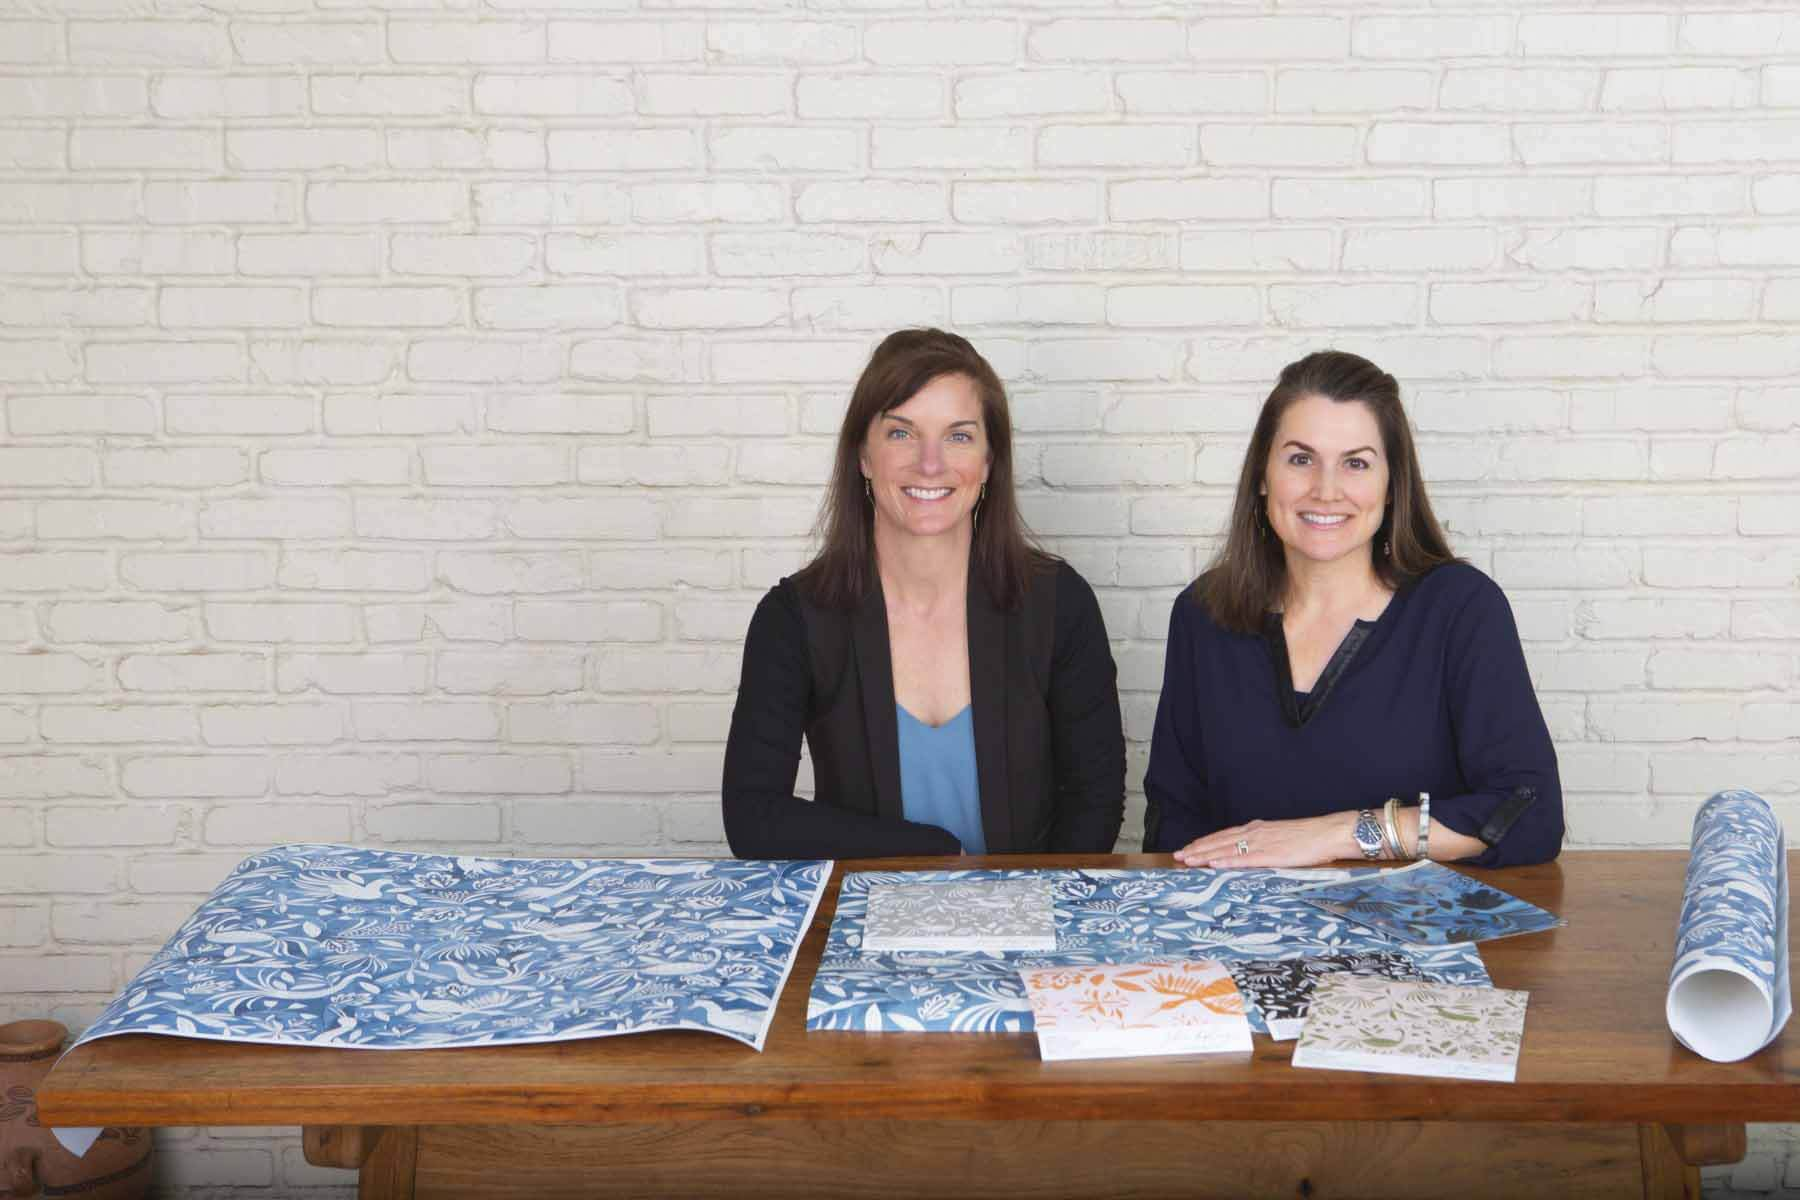 Rowanne McKnight & Katherine Stratton Miller of Julia Kipling, female Southern makers